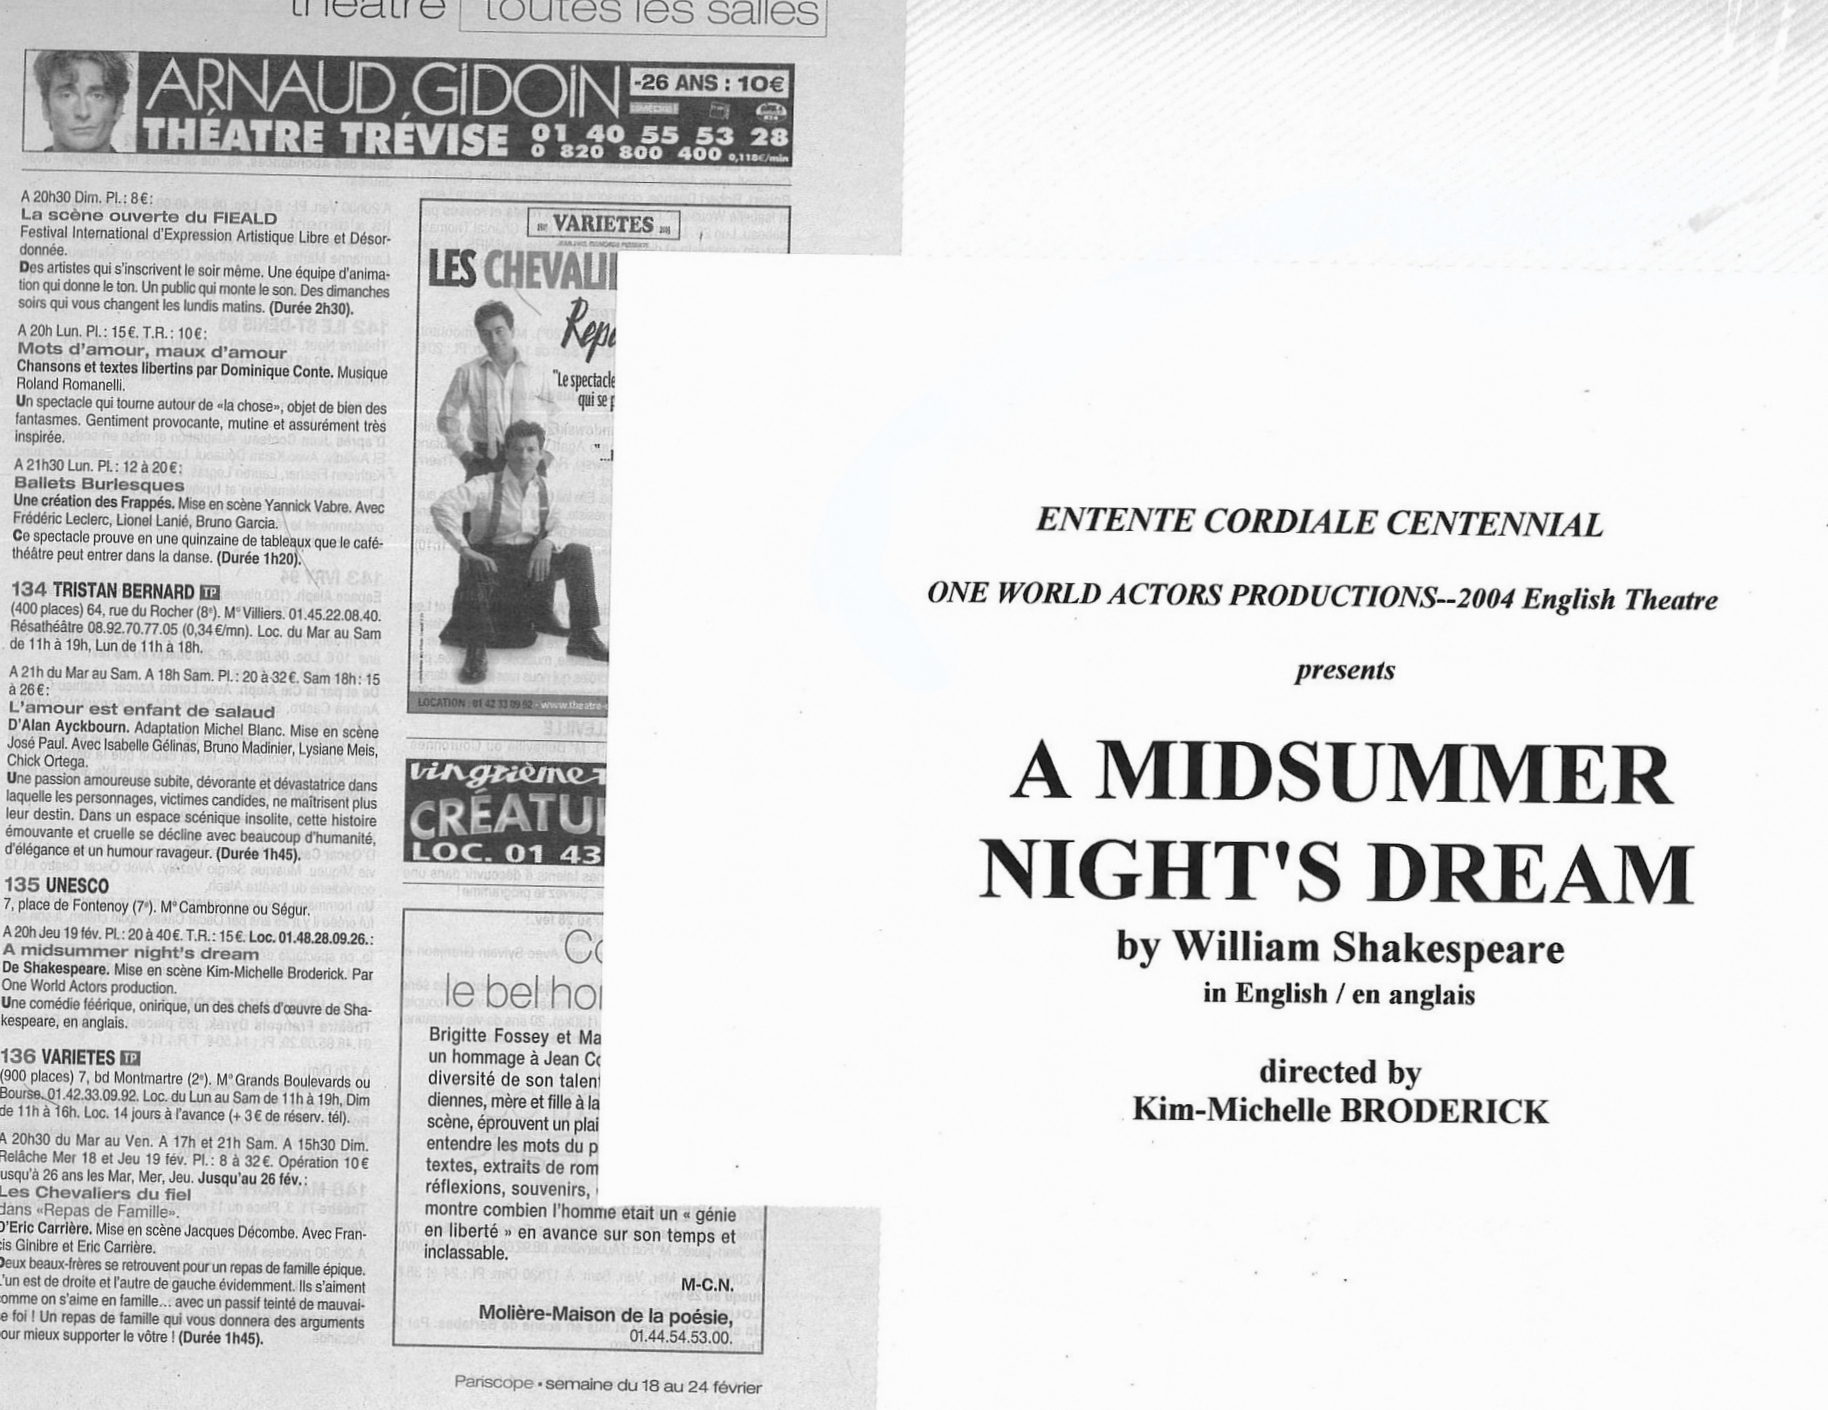 A Midsummer Night's Dream OWAP produced and directed by Kim Michelle BRODERICK Pariscope annonce.jpg